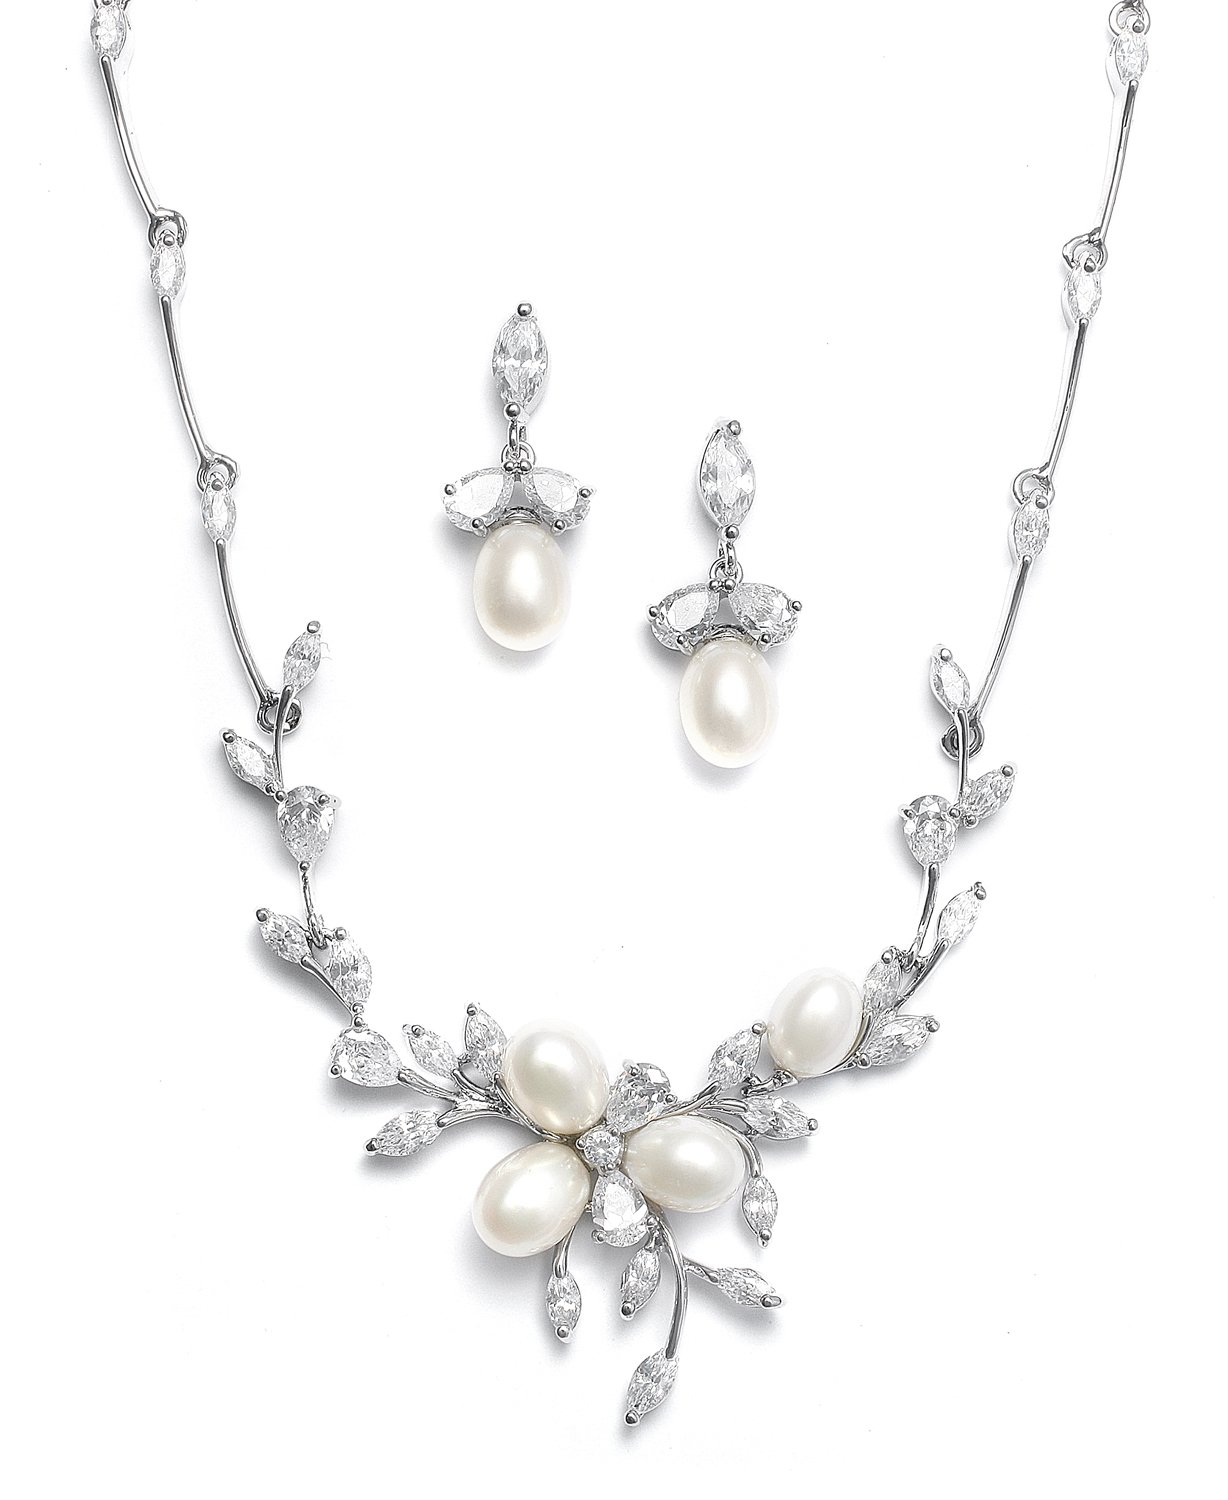 Mariell Genuine Freshwater Pearl & CZ Marquis Necklace Earrings Set Luxury Bridal Jewelry